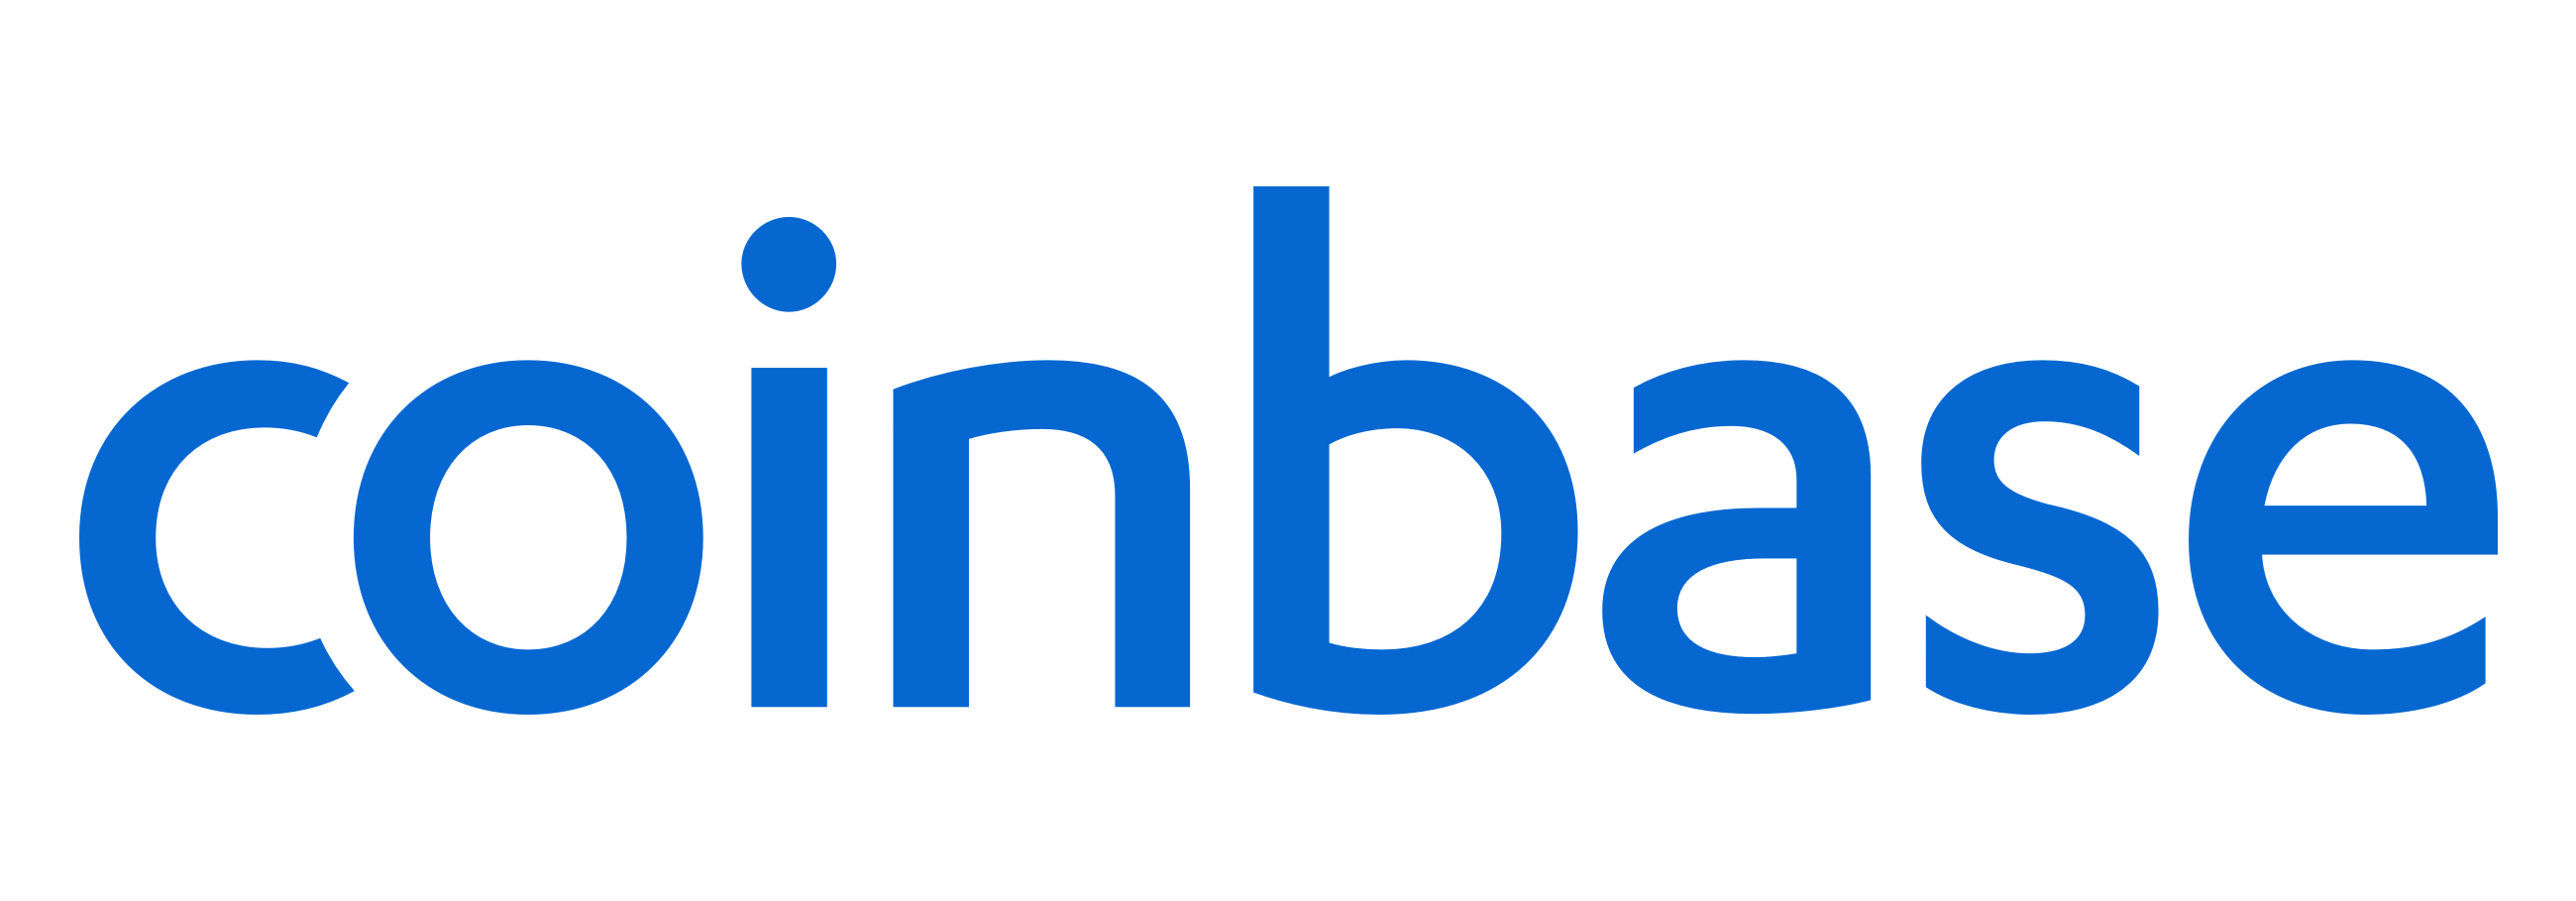 buying bitcoins using credit cards on coinbase